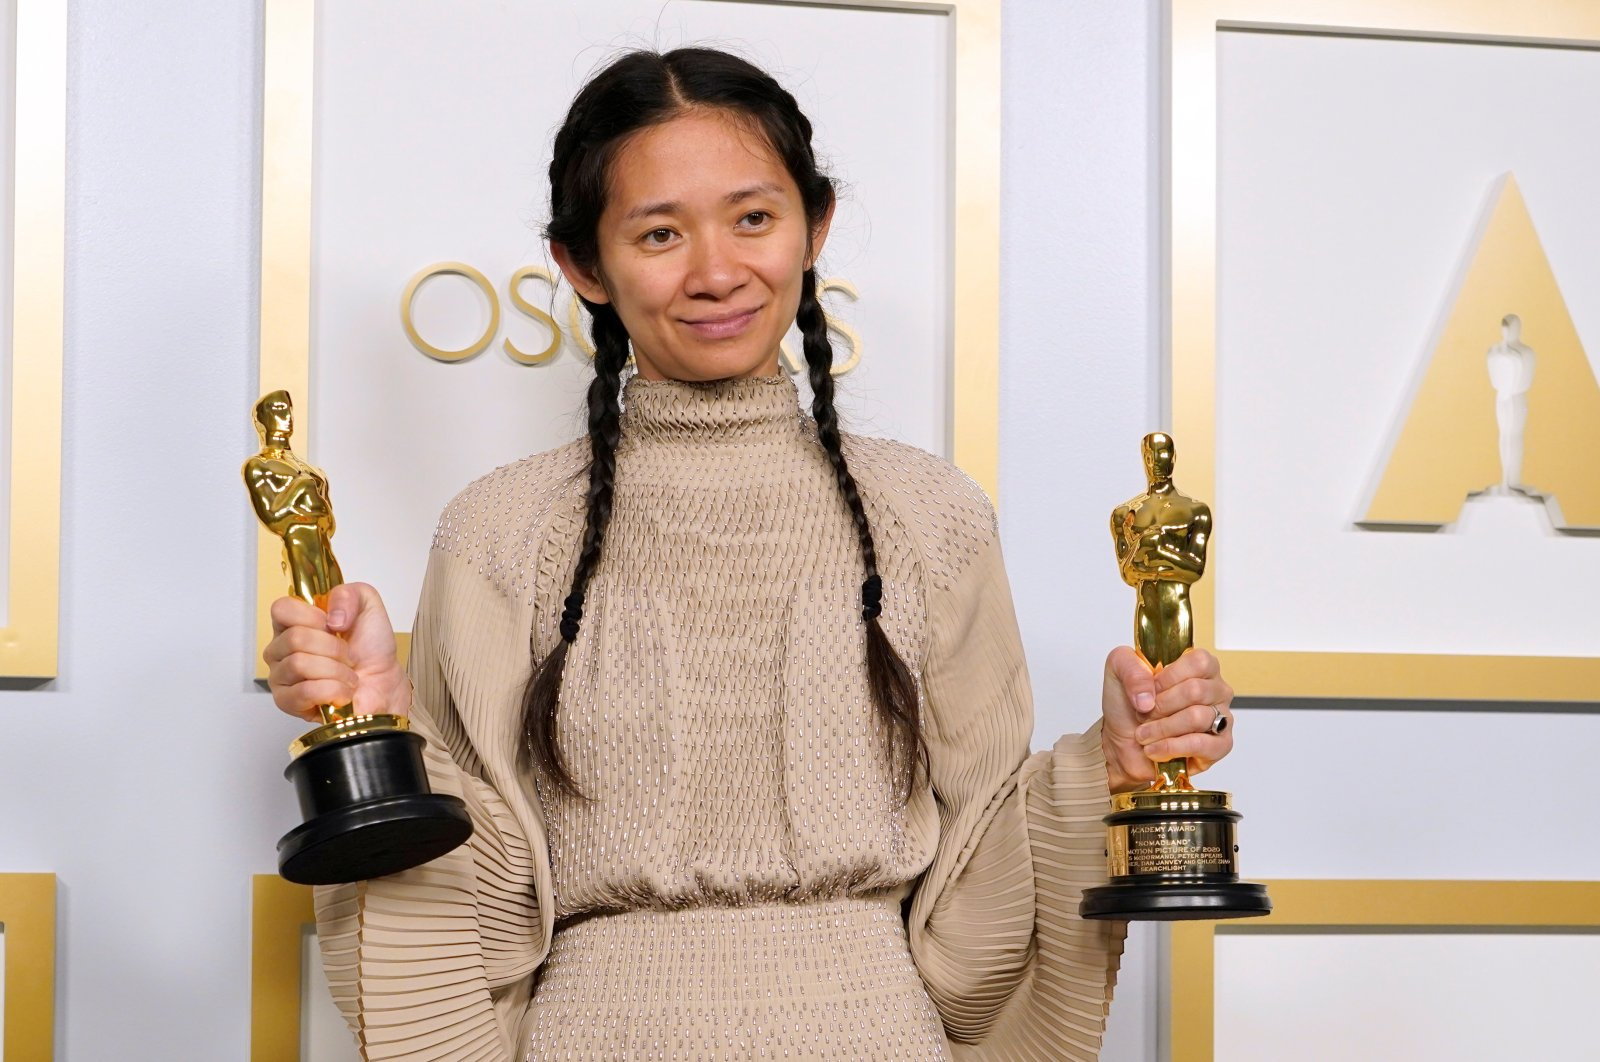 """Chloe Zhao, winner of the award for Best Picture for """"Nomadland,"""" poses in the press room at the Oscars, in Los Angeles, California, U.S., April 25, 2021. (Reuters Photo)"""